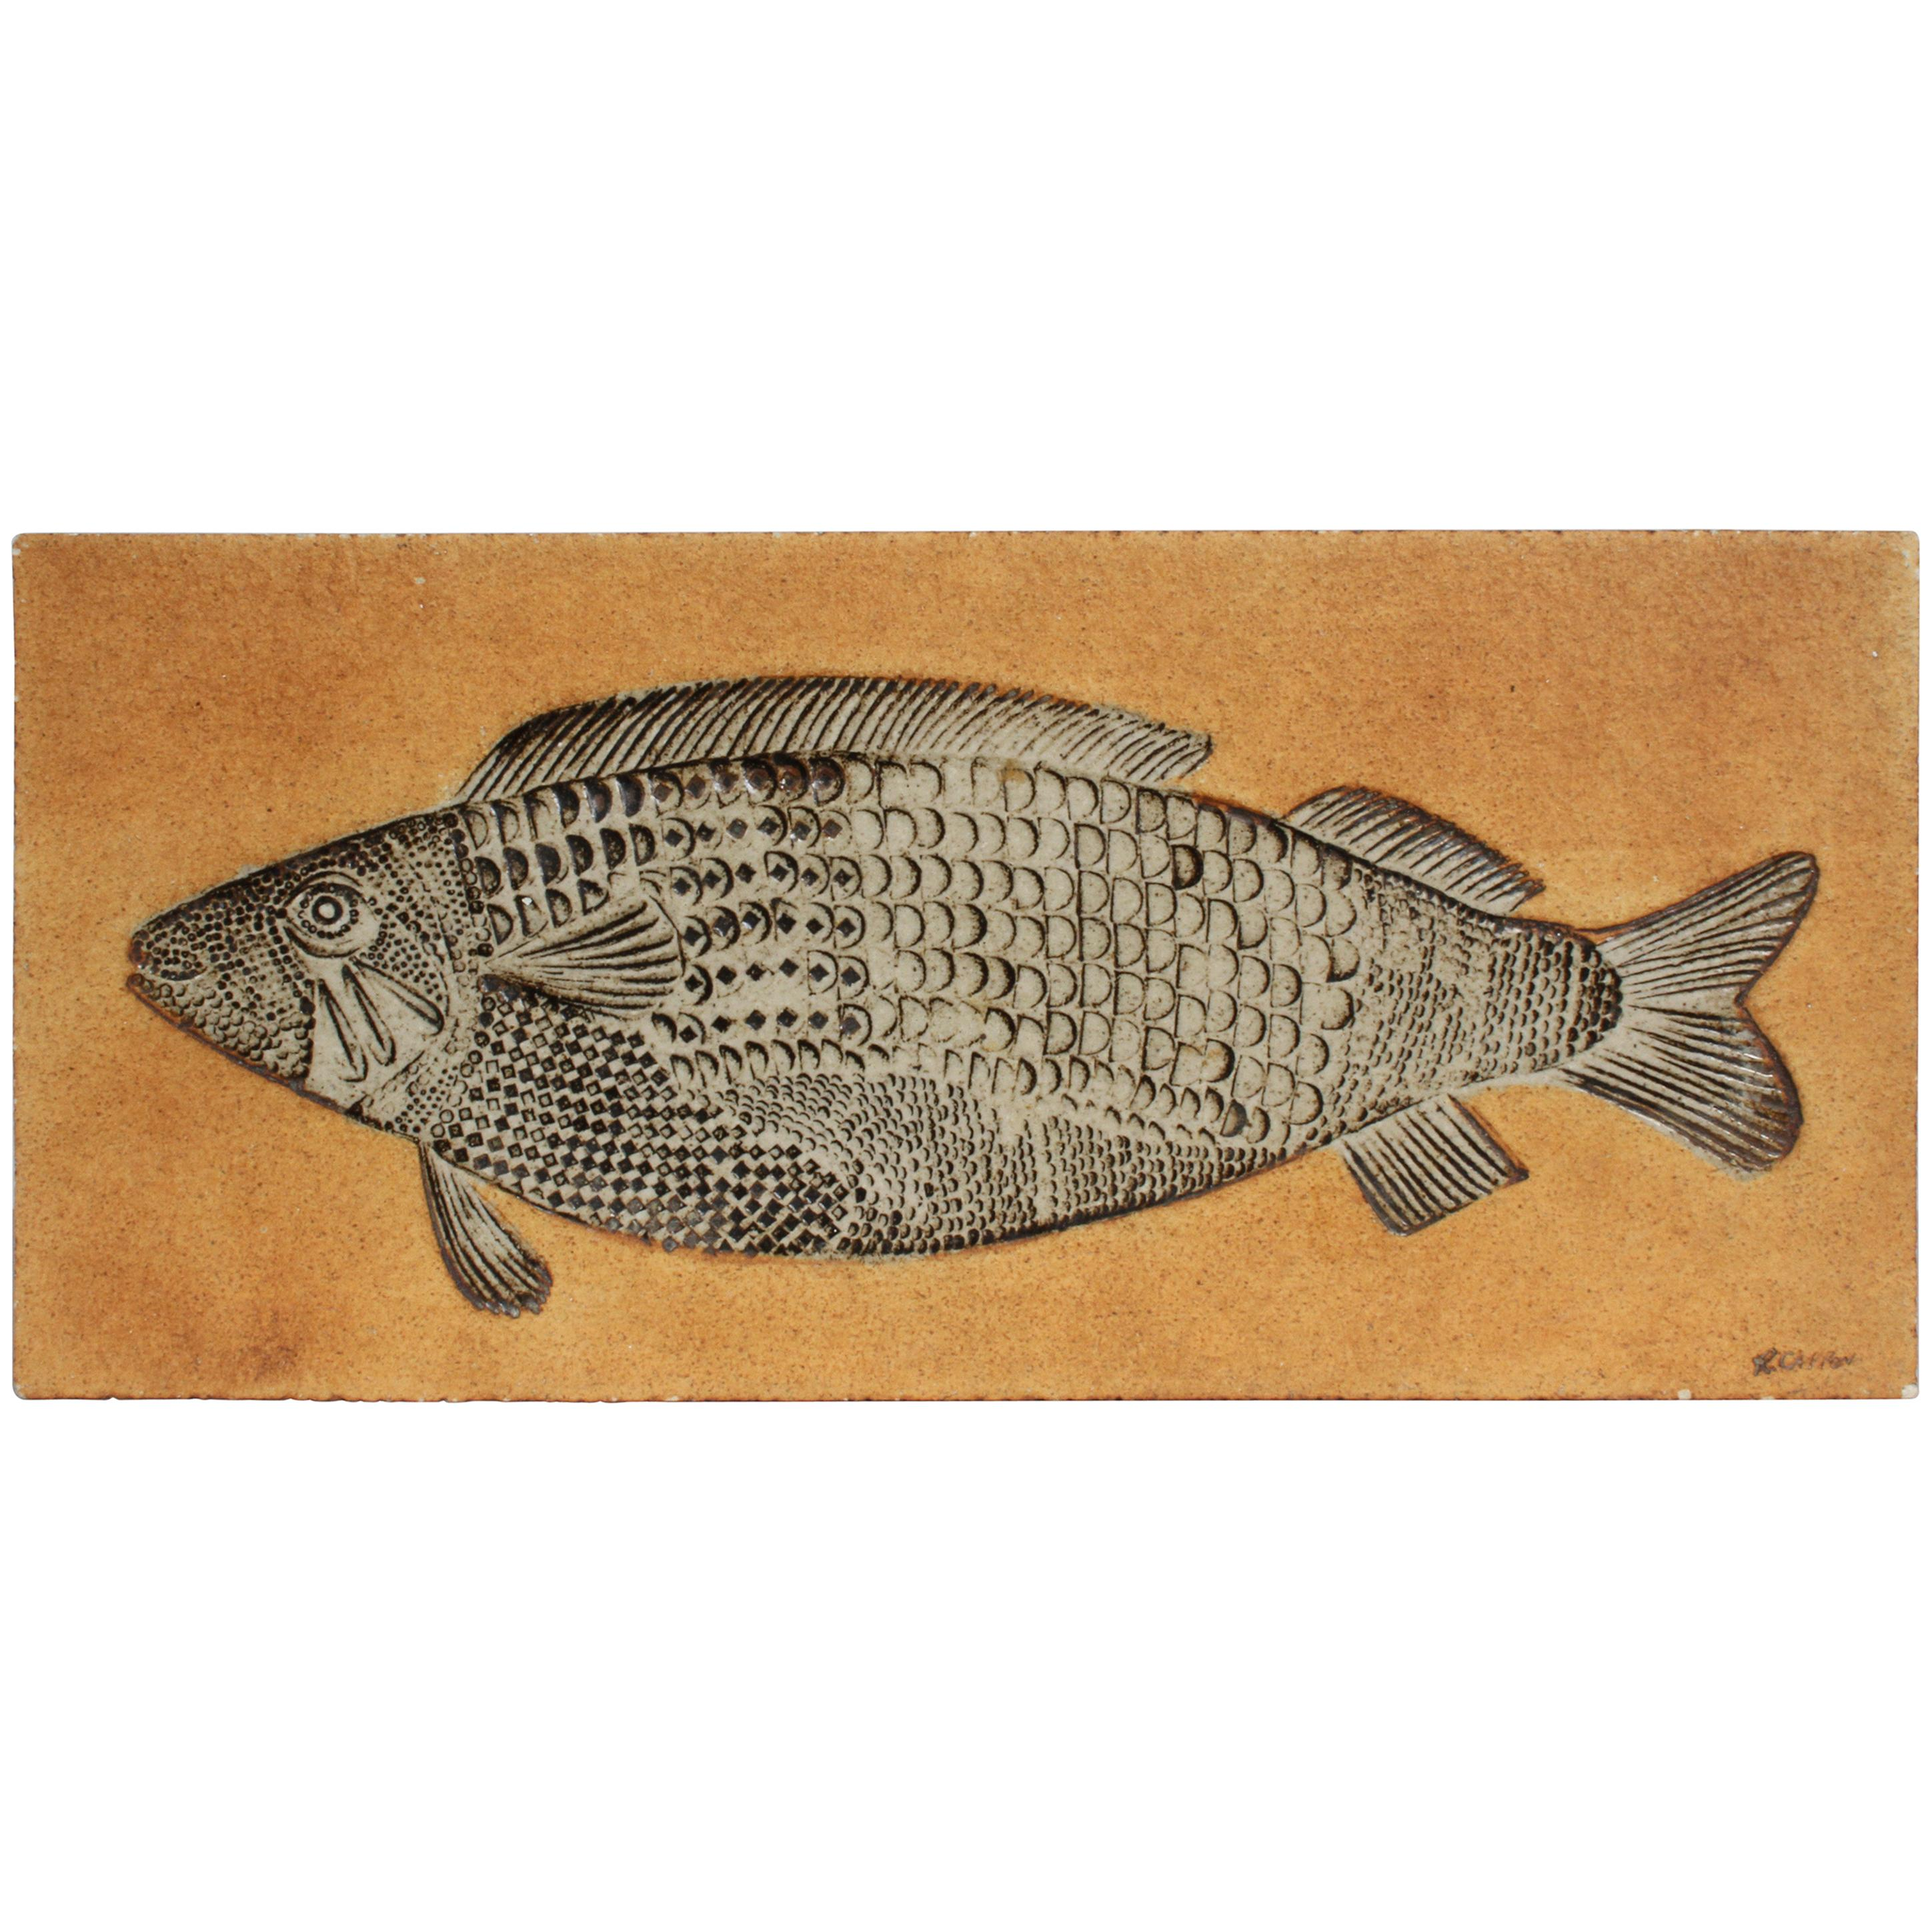 Artist Roger Capron Ceramic Tile in the Style of a Prehistoric Fossil Fish